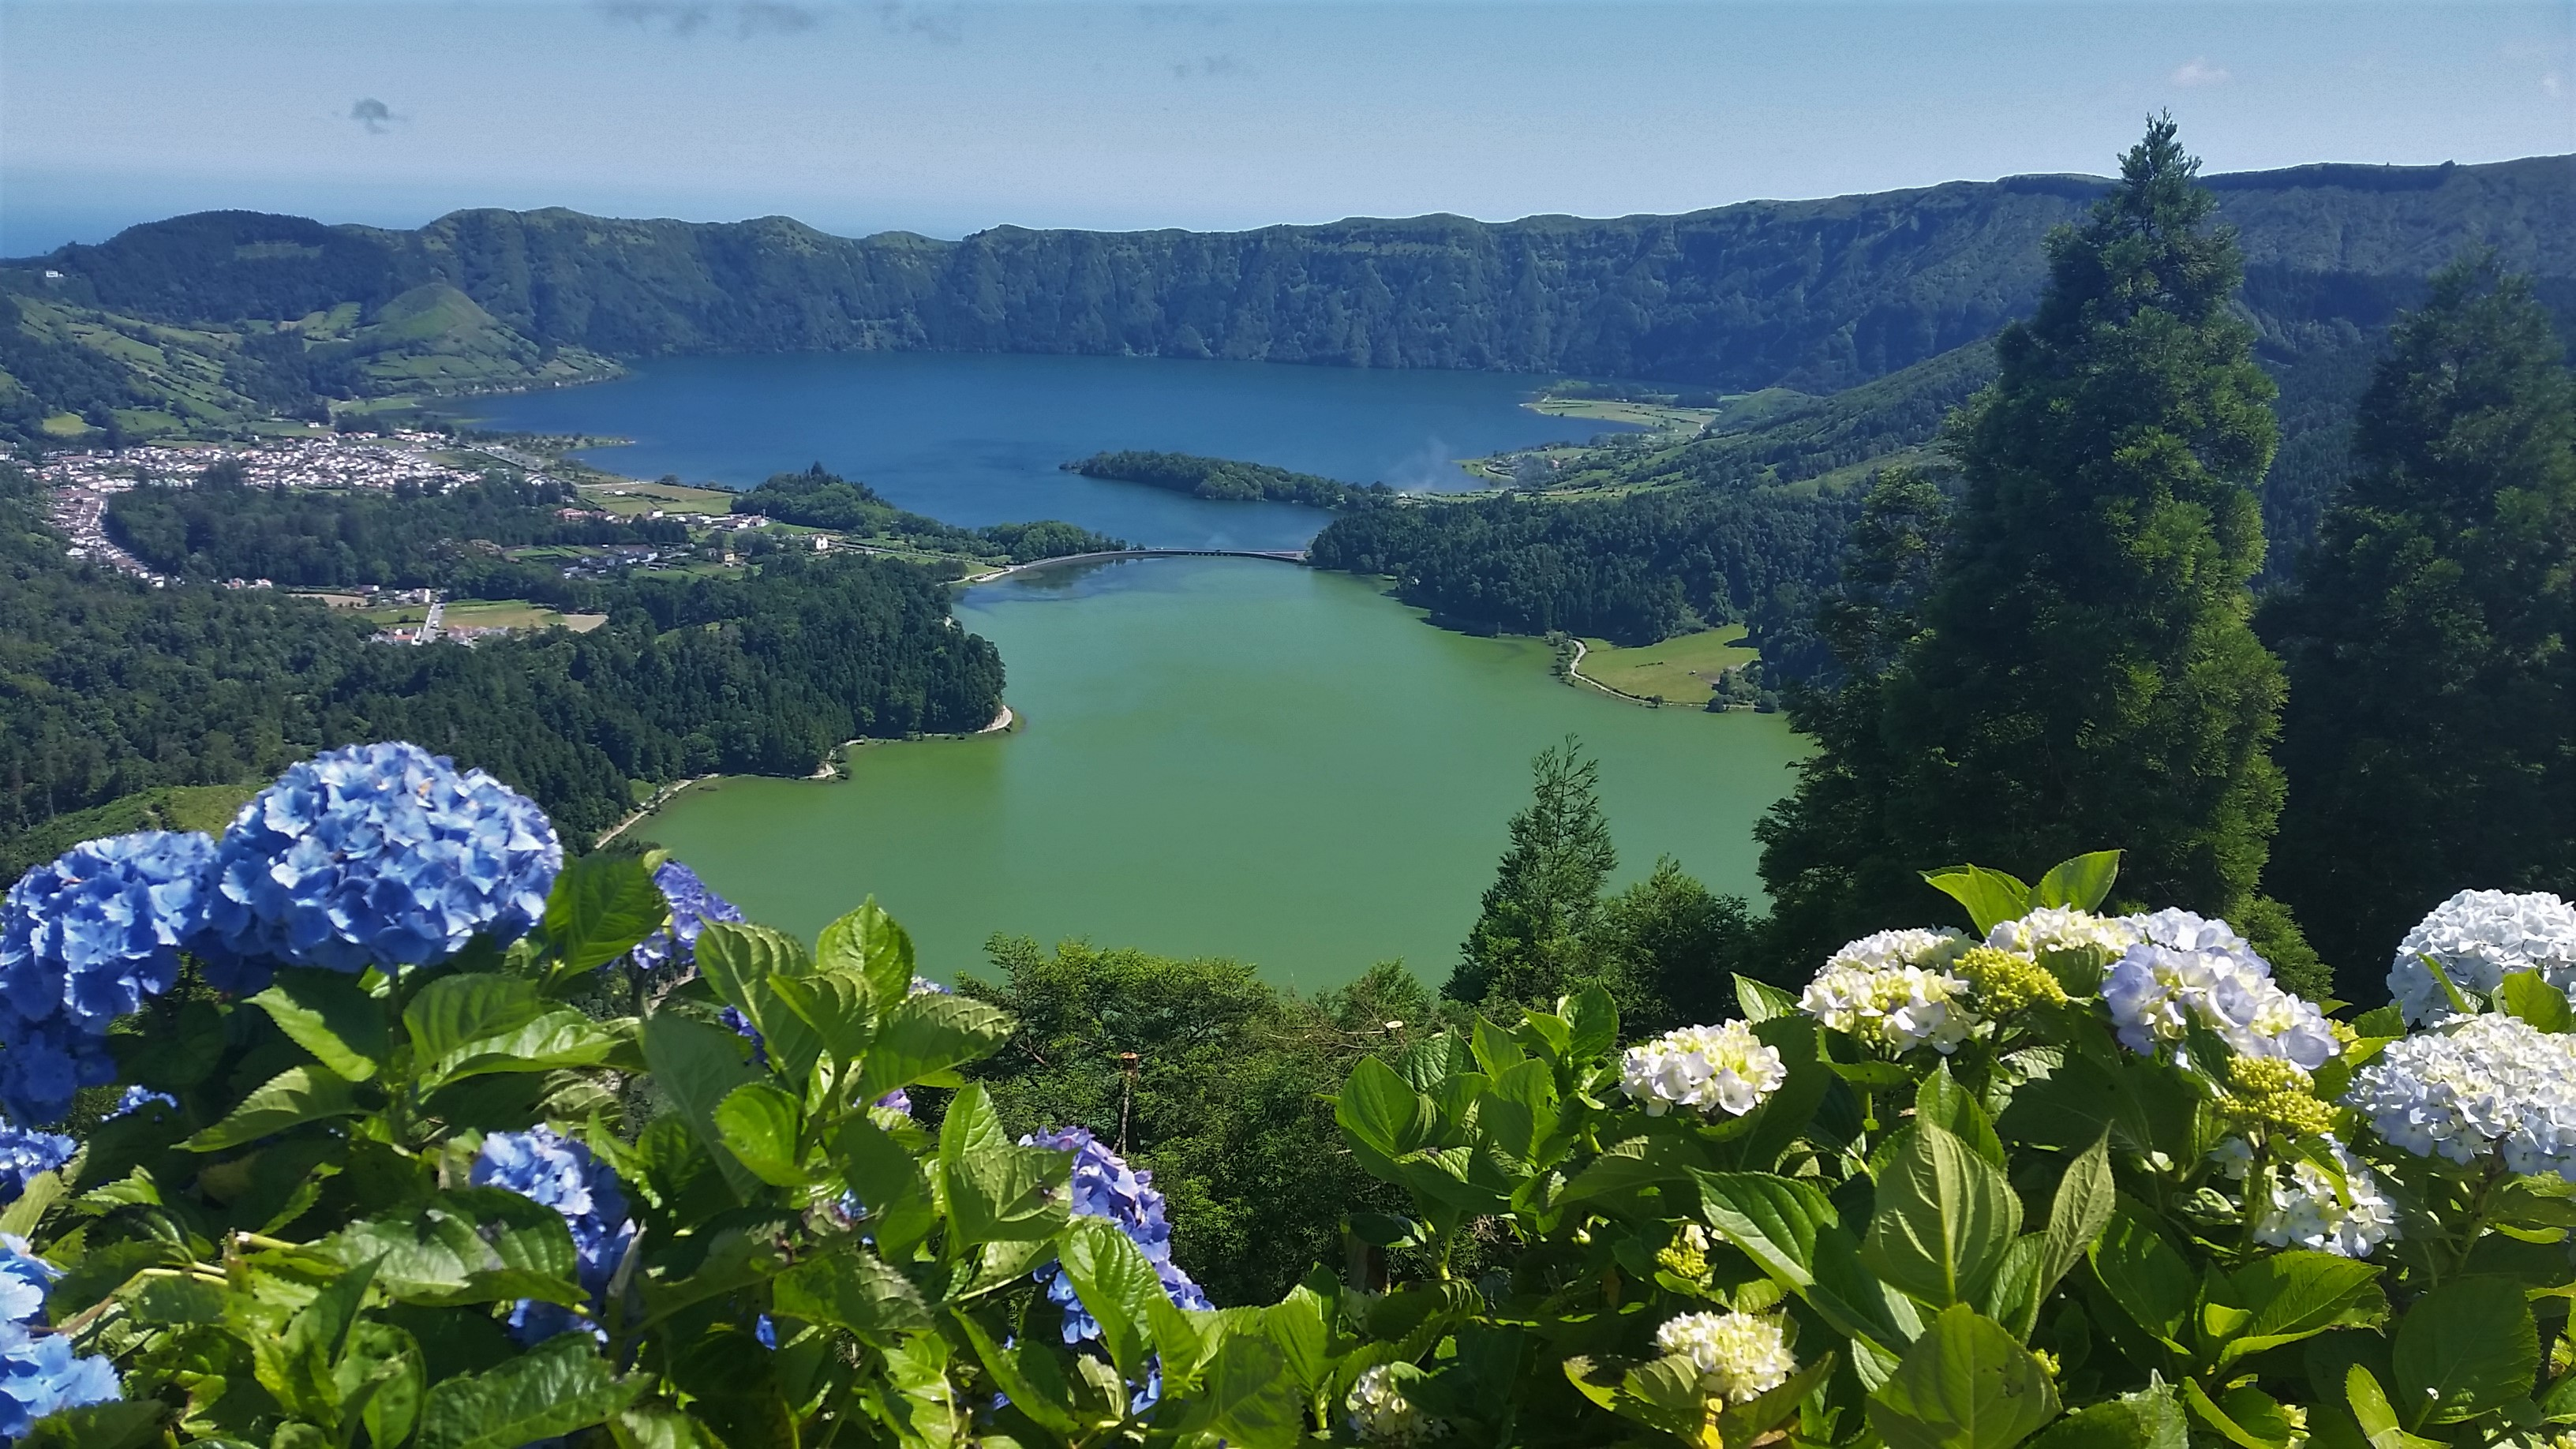 Kings view (Sete Cidades Lakes)